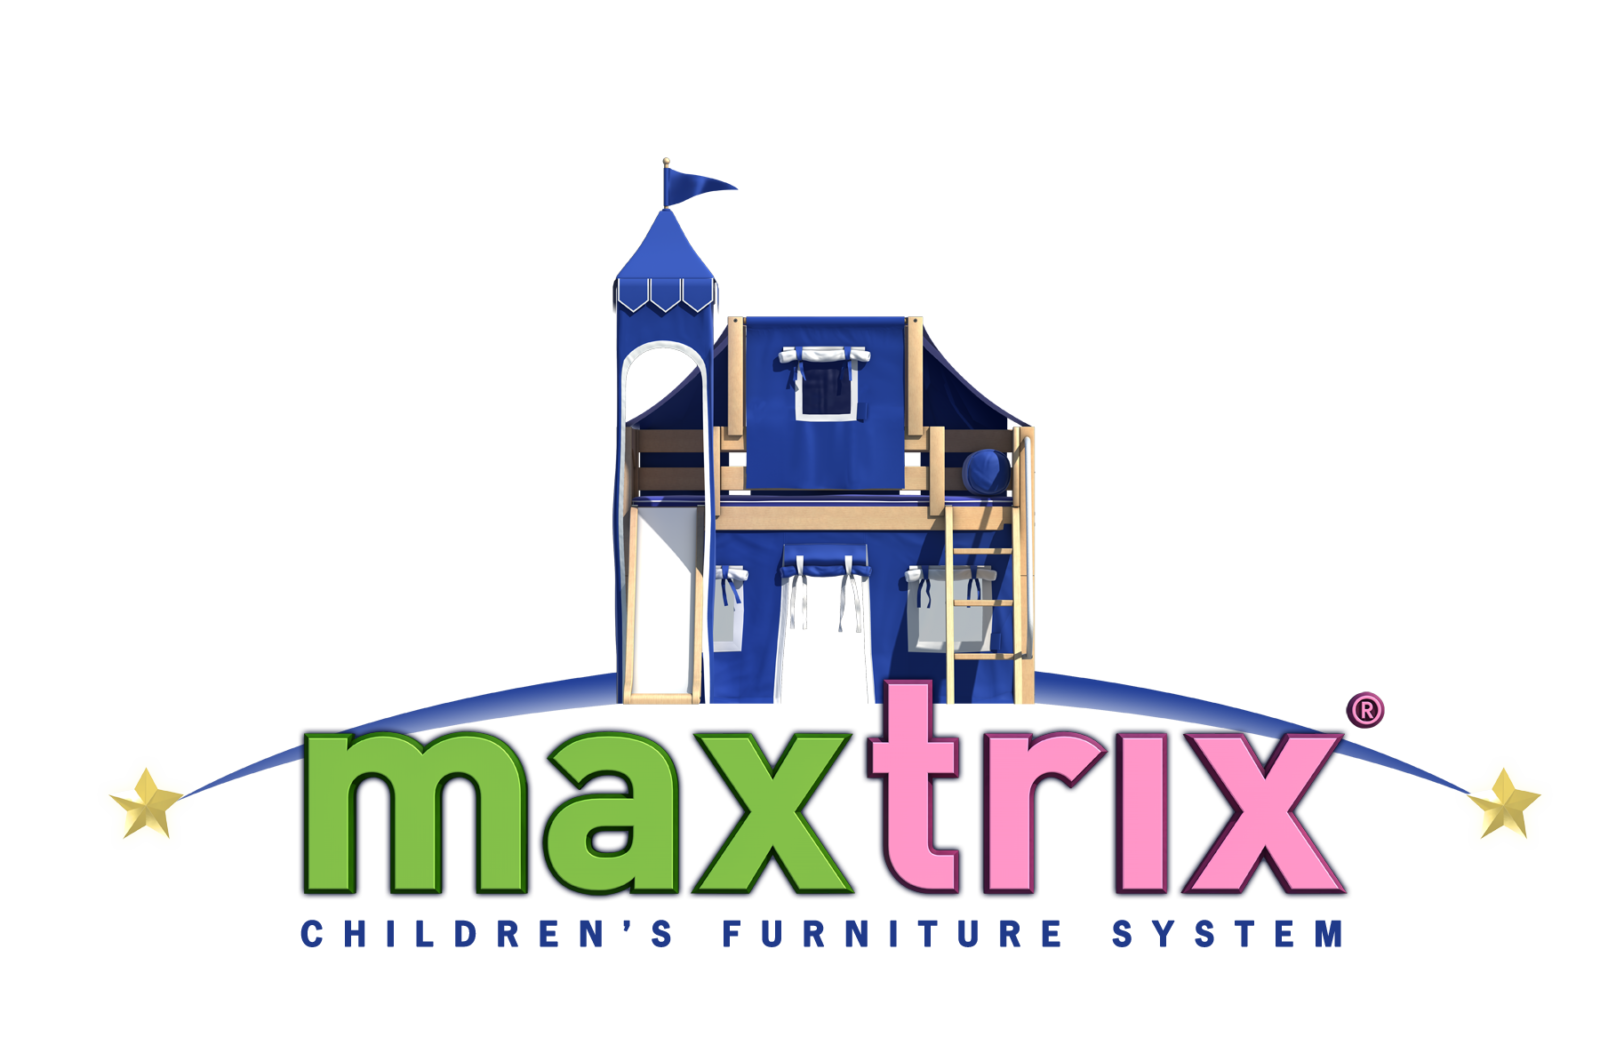 Maxwood Company Logos   Maxwood Furniture, Inc.